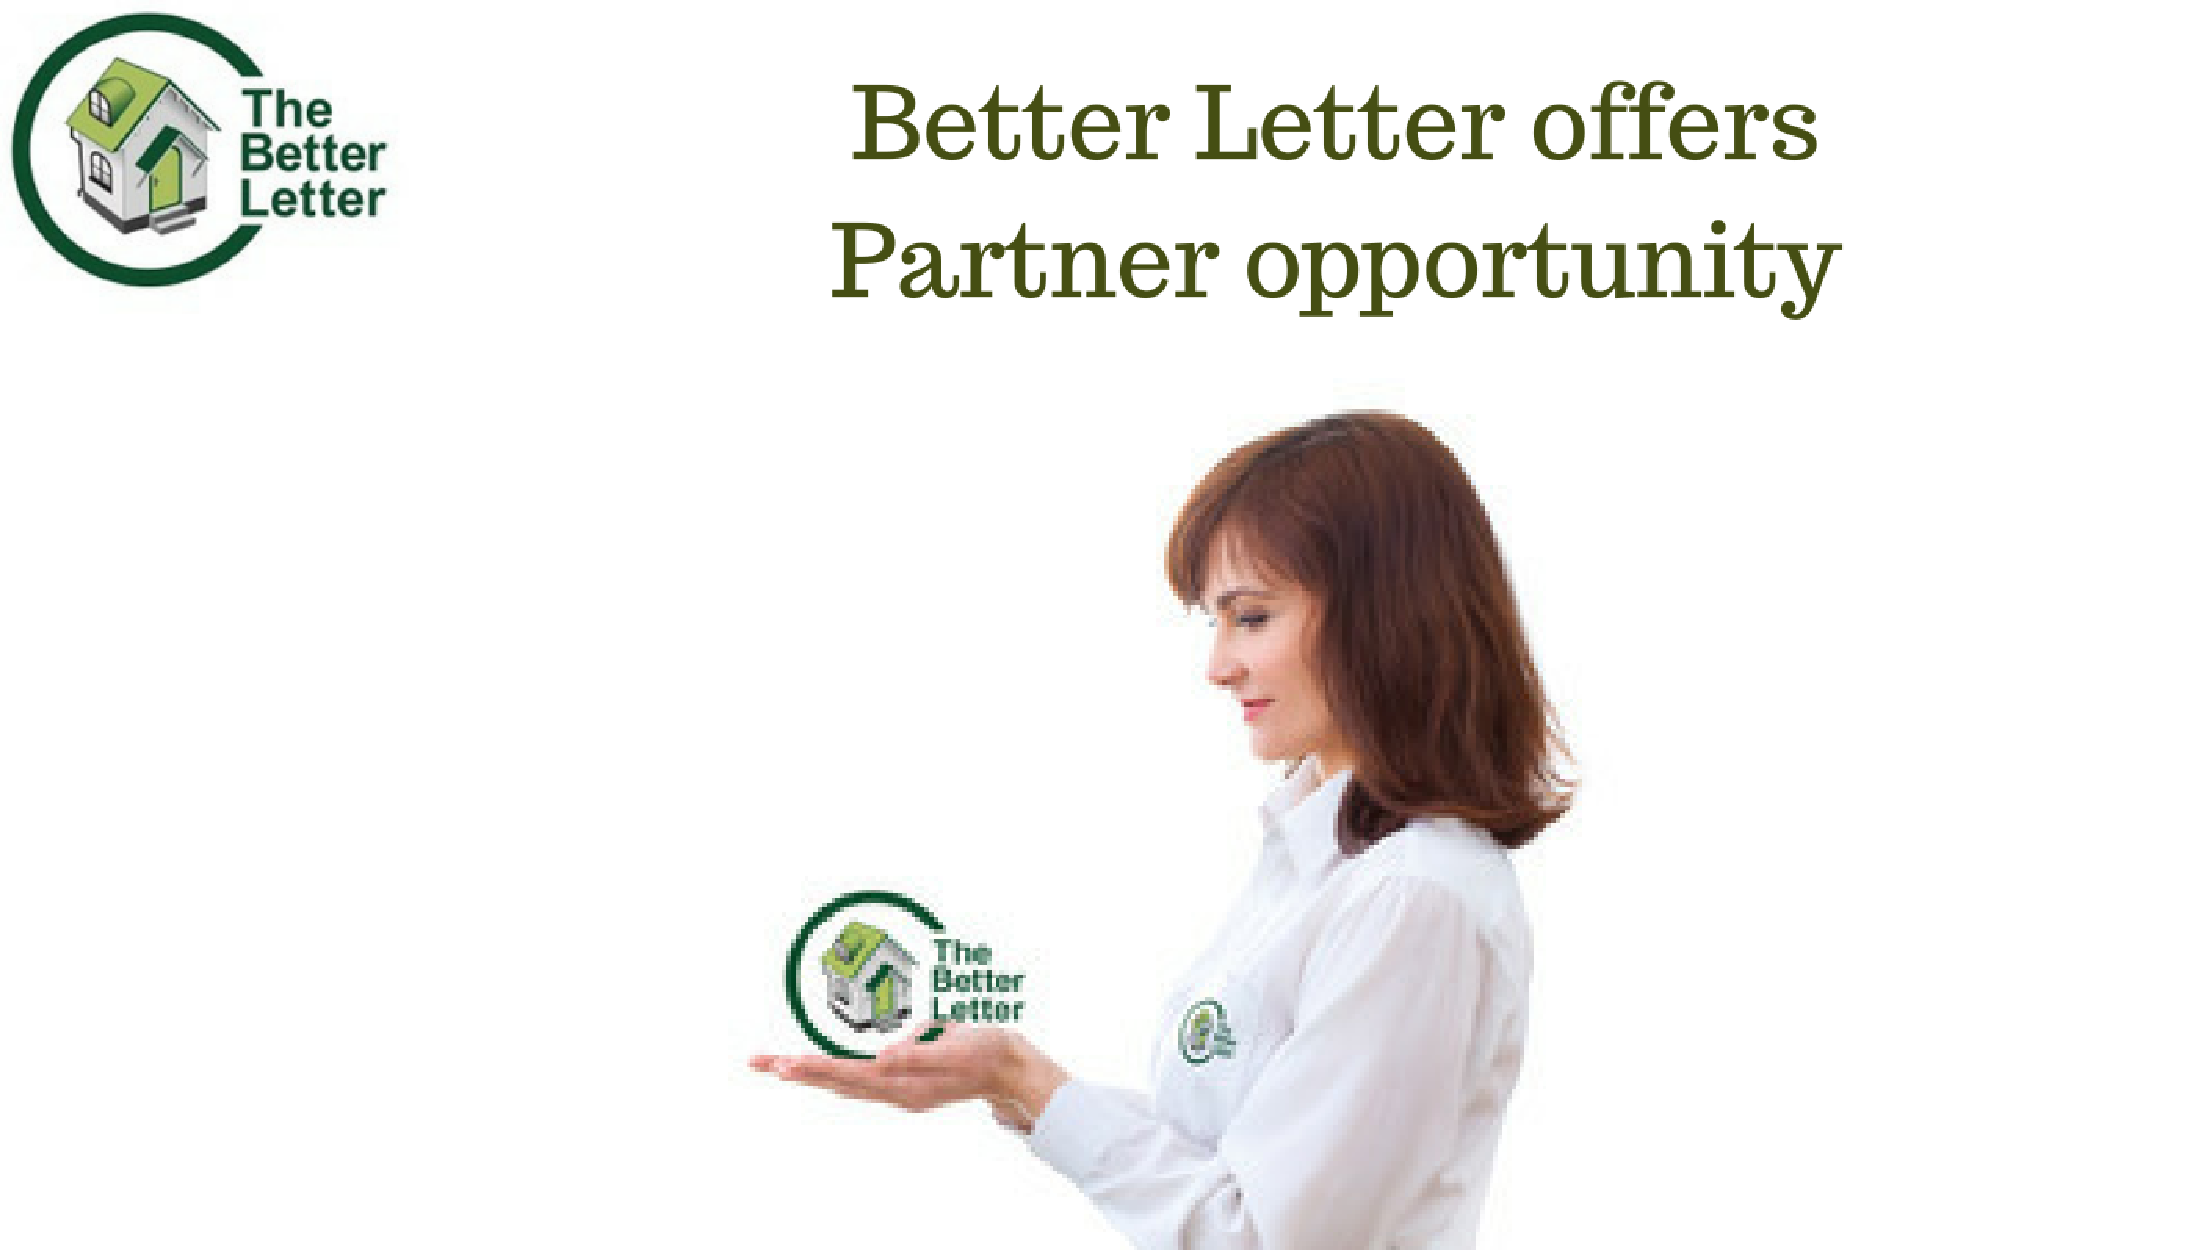 Better Letter letting agent partner opportunity